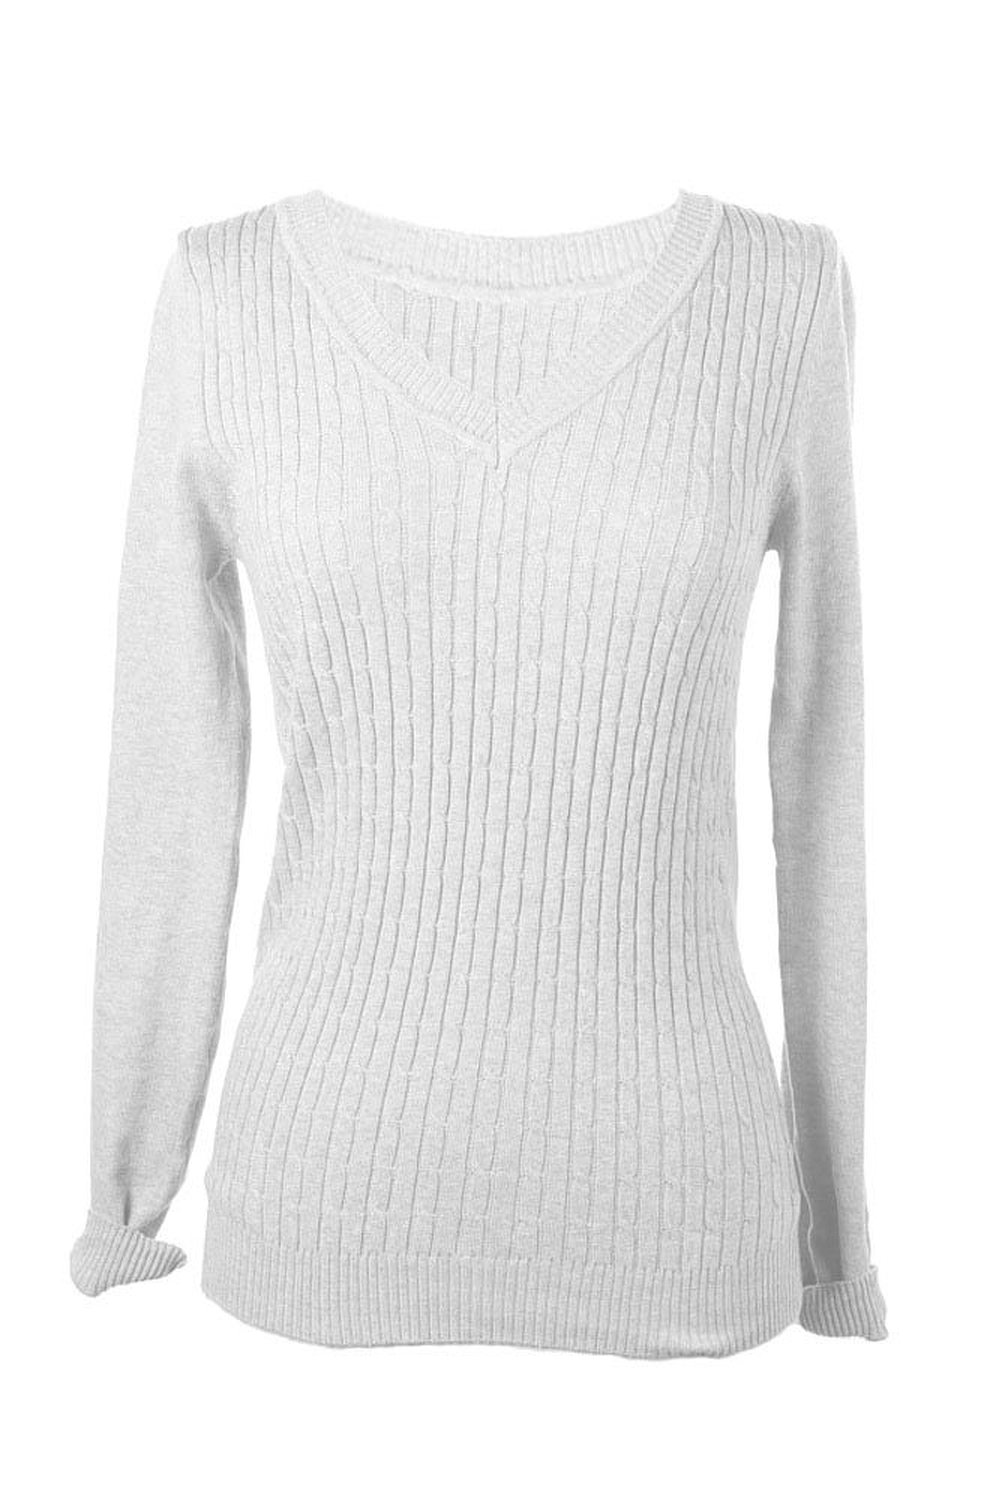 Neck cable knit sweater at amazon women's clothing store: pullover sweaters